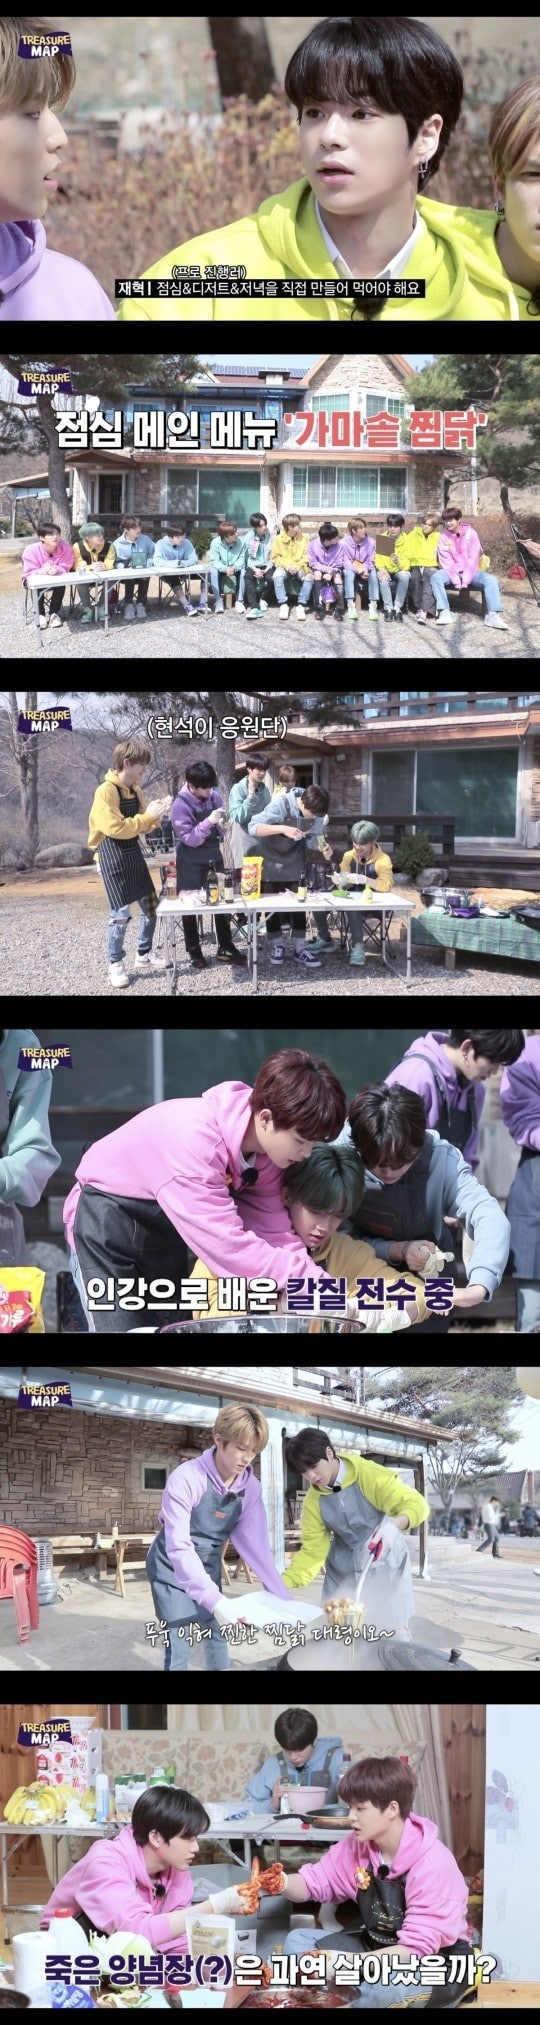 YG's Rookie Group TREASURE Challenges on Making Healthy Food… Shares Appreciation Towards Their Parents